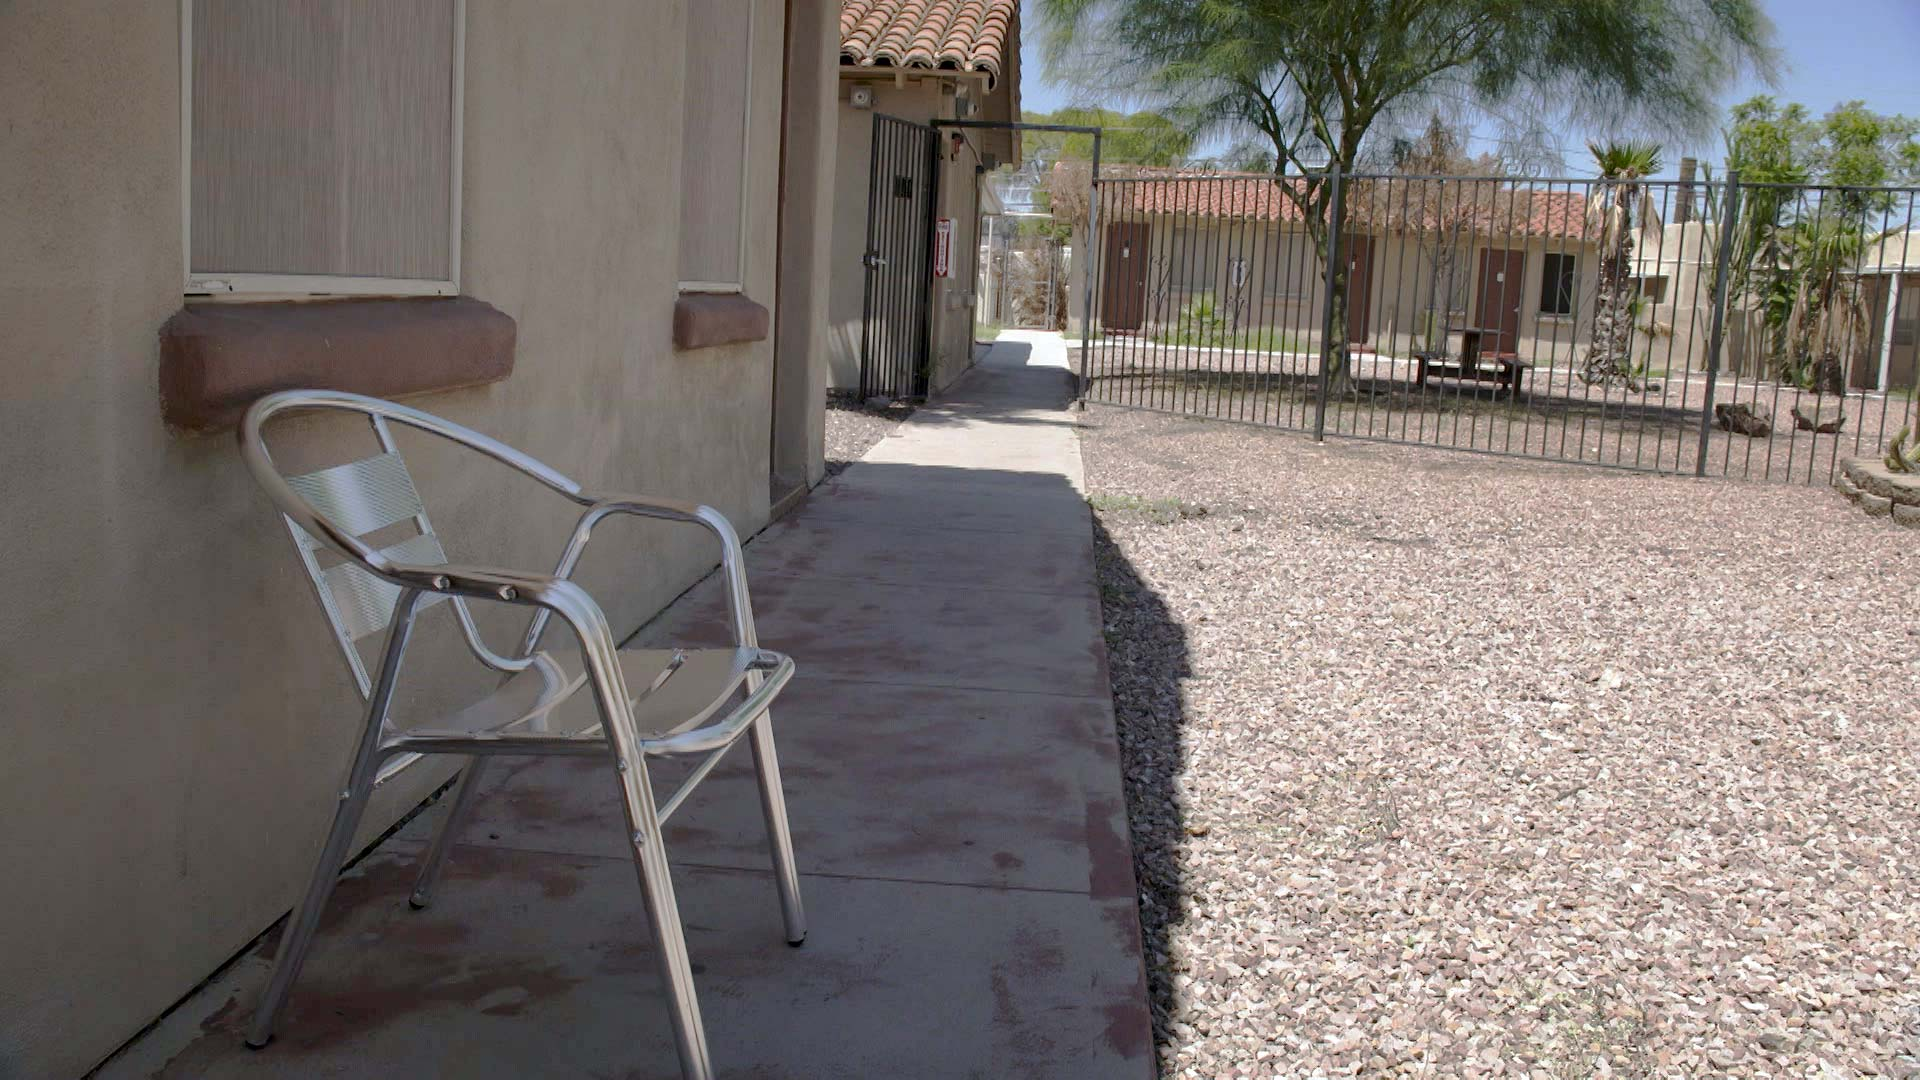 An empty chair outside of a former motel on North Oracle Road that the city of Tucson purchased and transformed into bridge housing for people experiencing homelessness. August 2021.